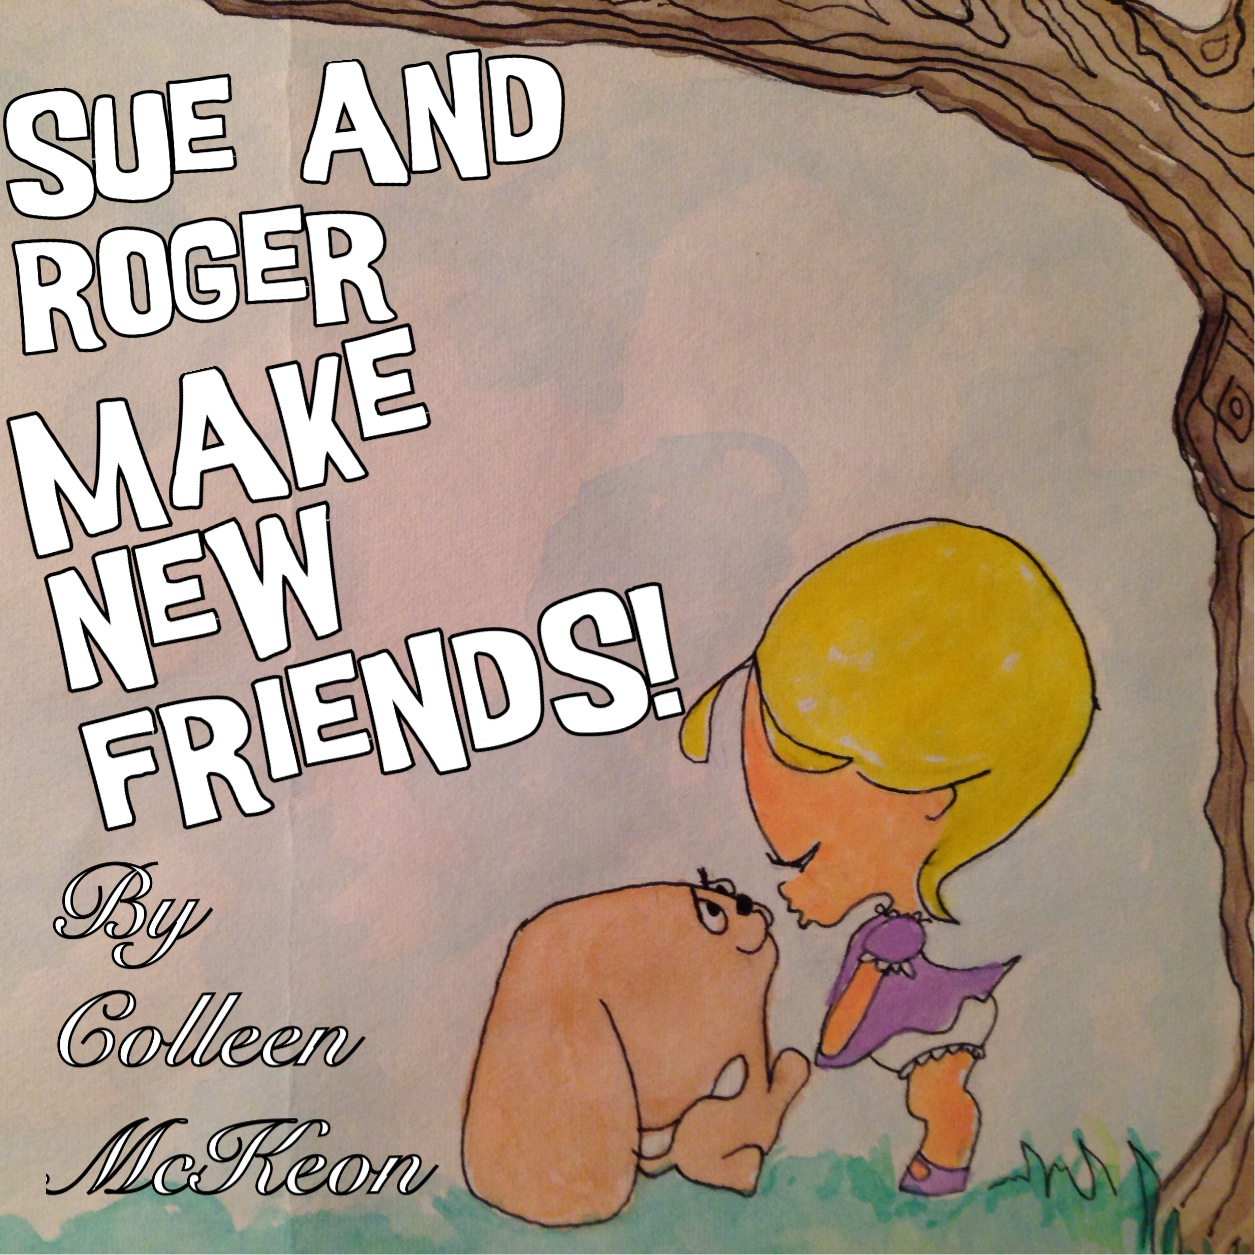 'SUE AND ROGER MAKE NEW FRIENDS!""